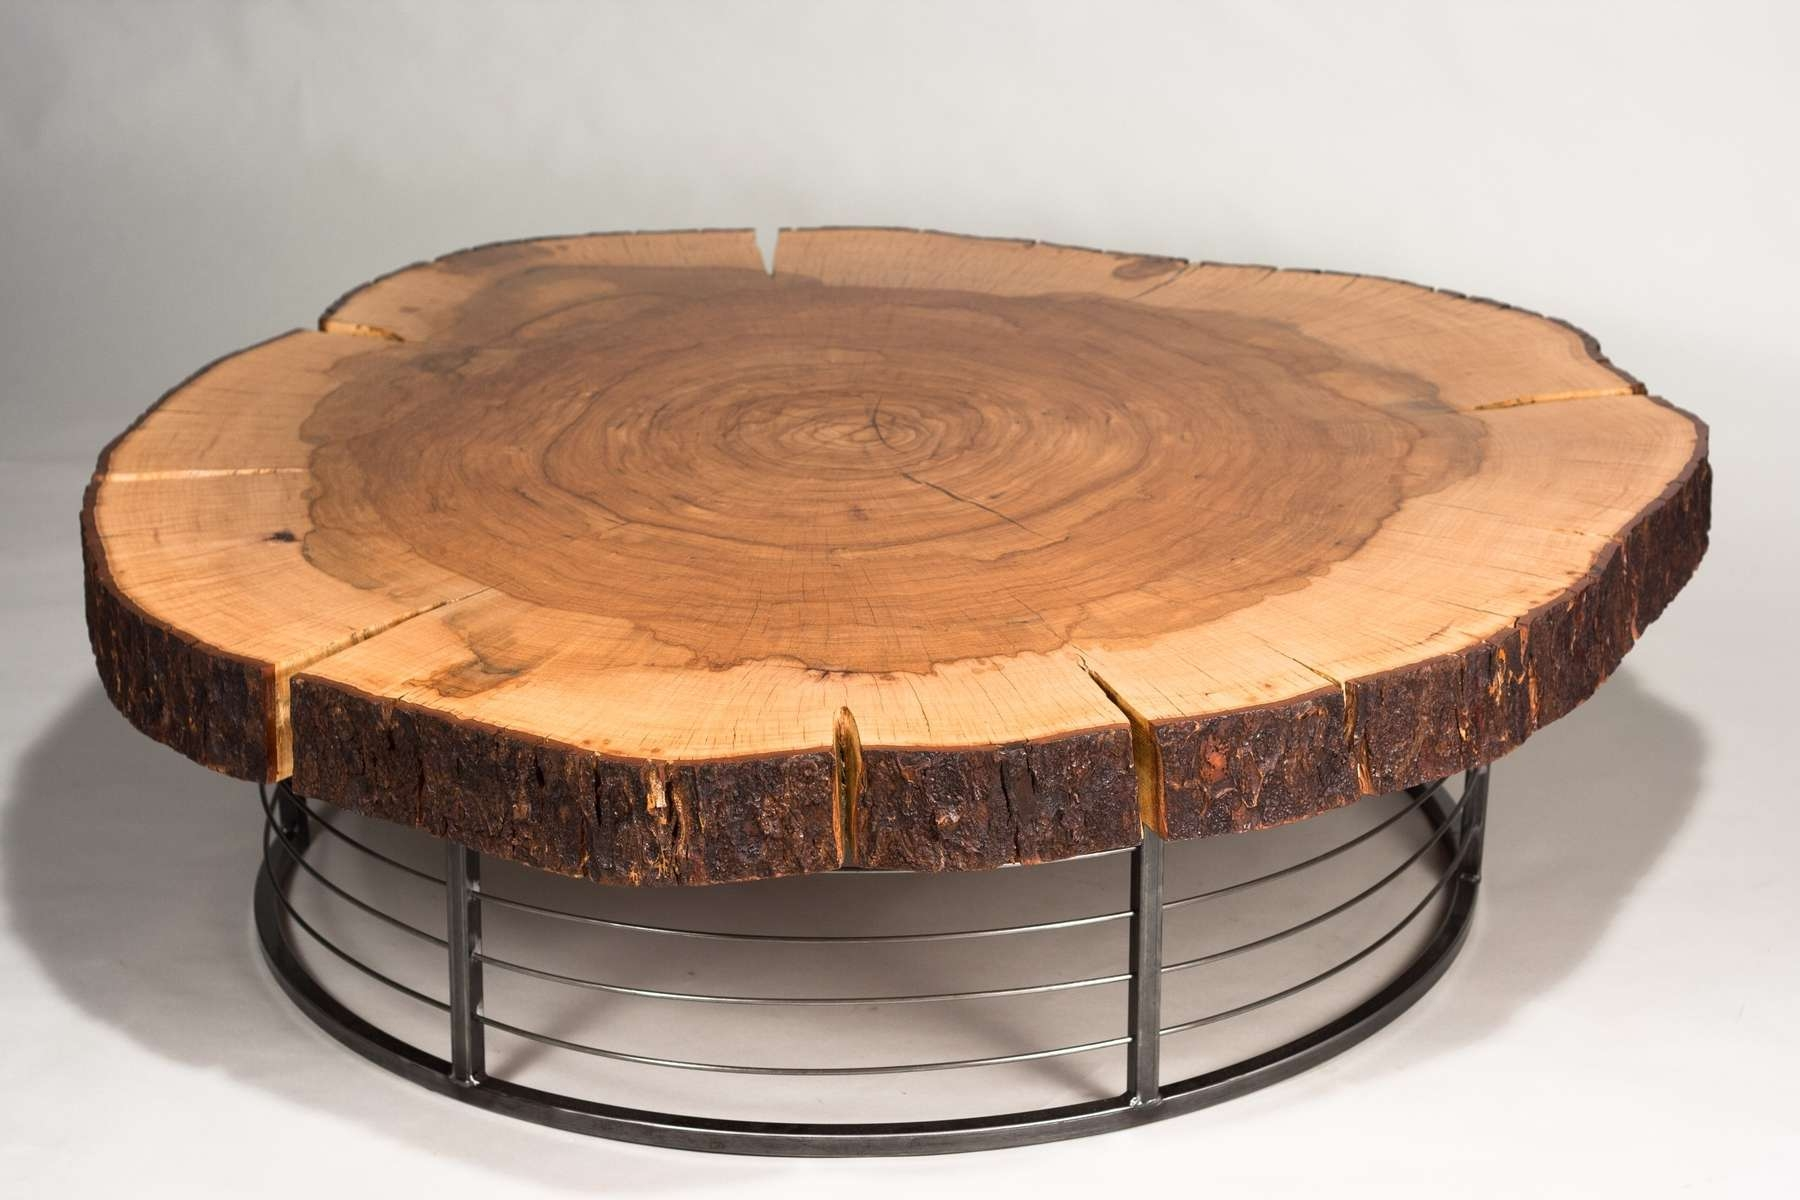 Useful Coffee Tables Made From Tree Trunks For Your Home Design Regarding Famous Tree Trunk Coffee Table (View 19 of 20)